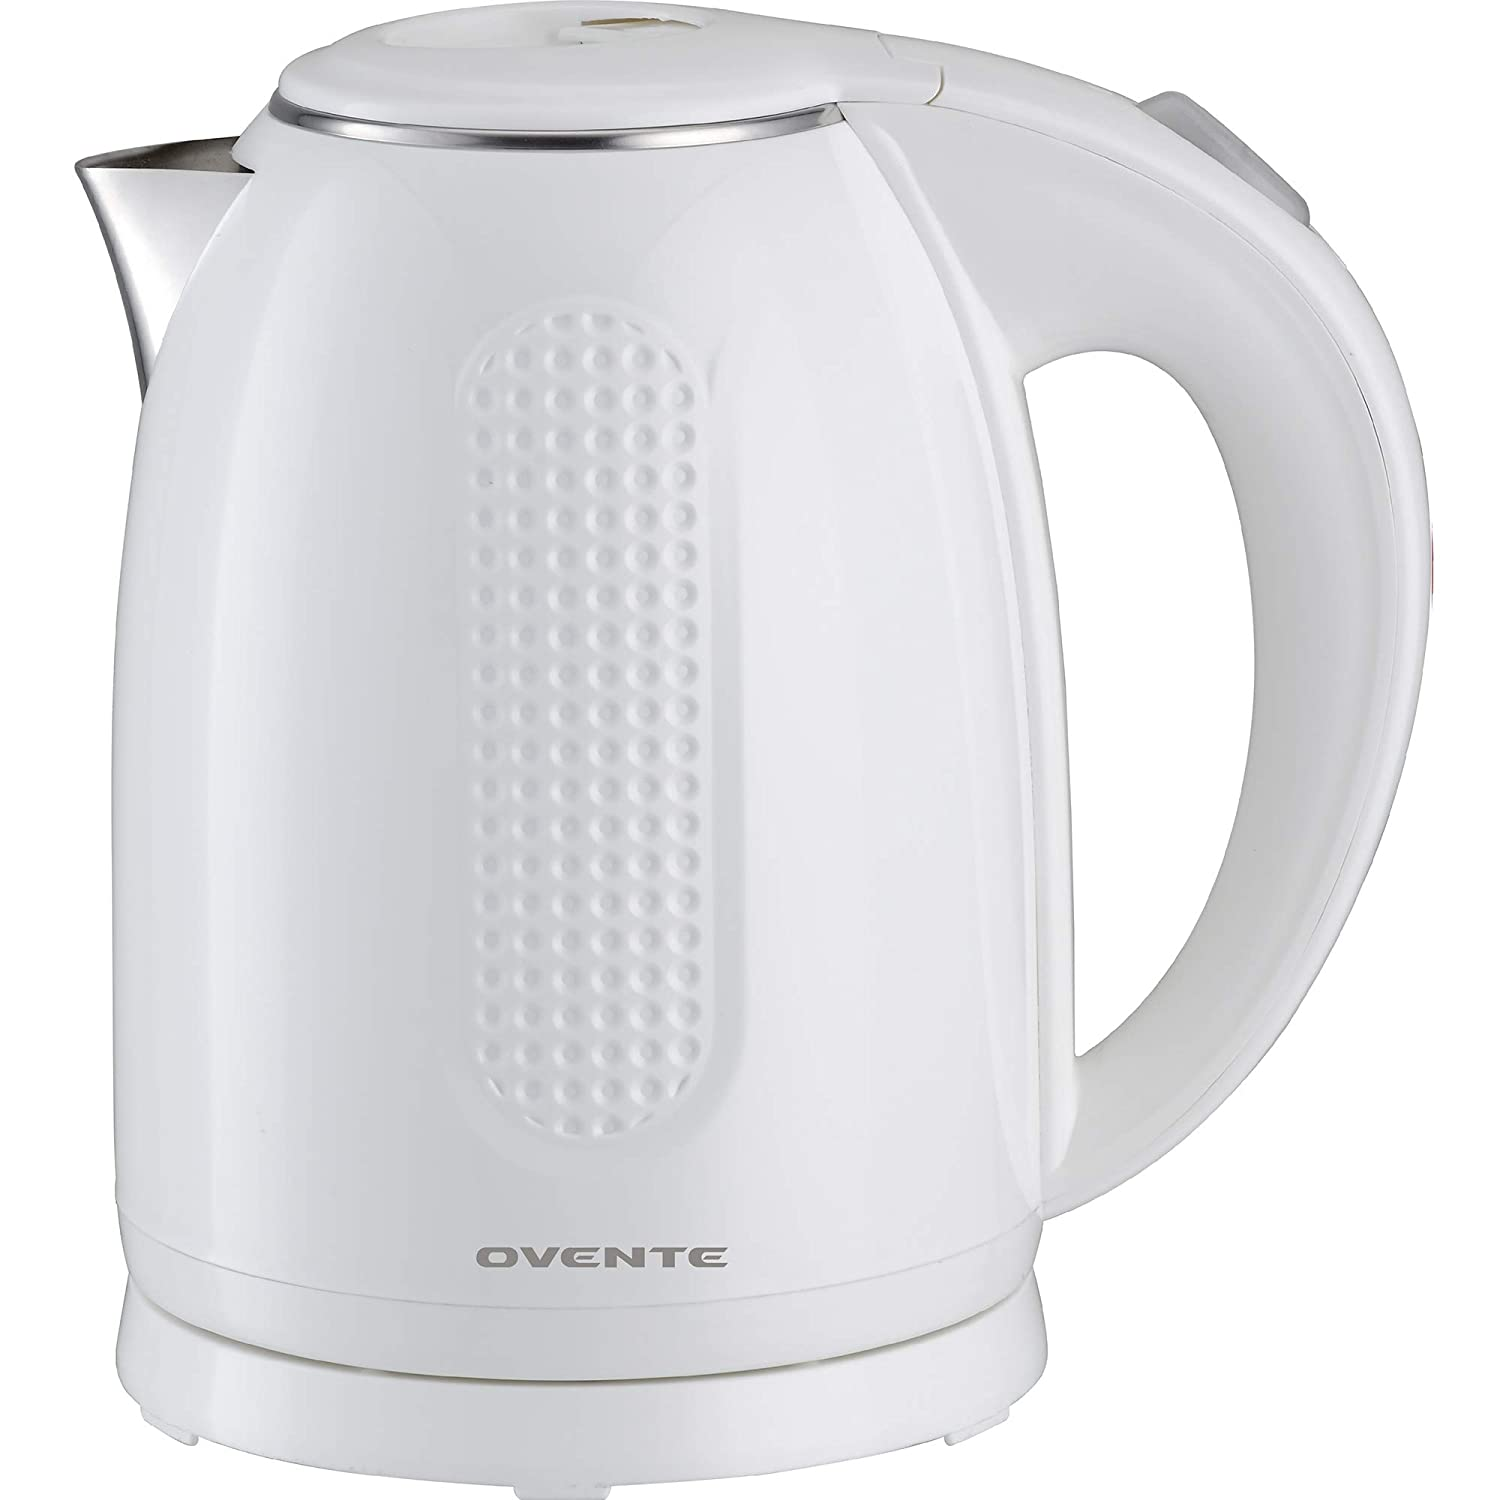 Ovente 1.7L Electric Kettle, Double Wall 304 Stainless Steel Water Boiler, Auto Shut-Off and Boil-Dry Protection, Stay-Cool Exterior, BPA-Free, Cordless, Black (KD640B) (White)